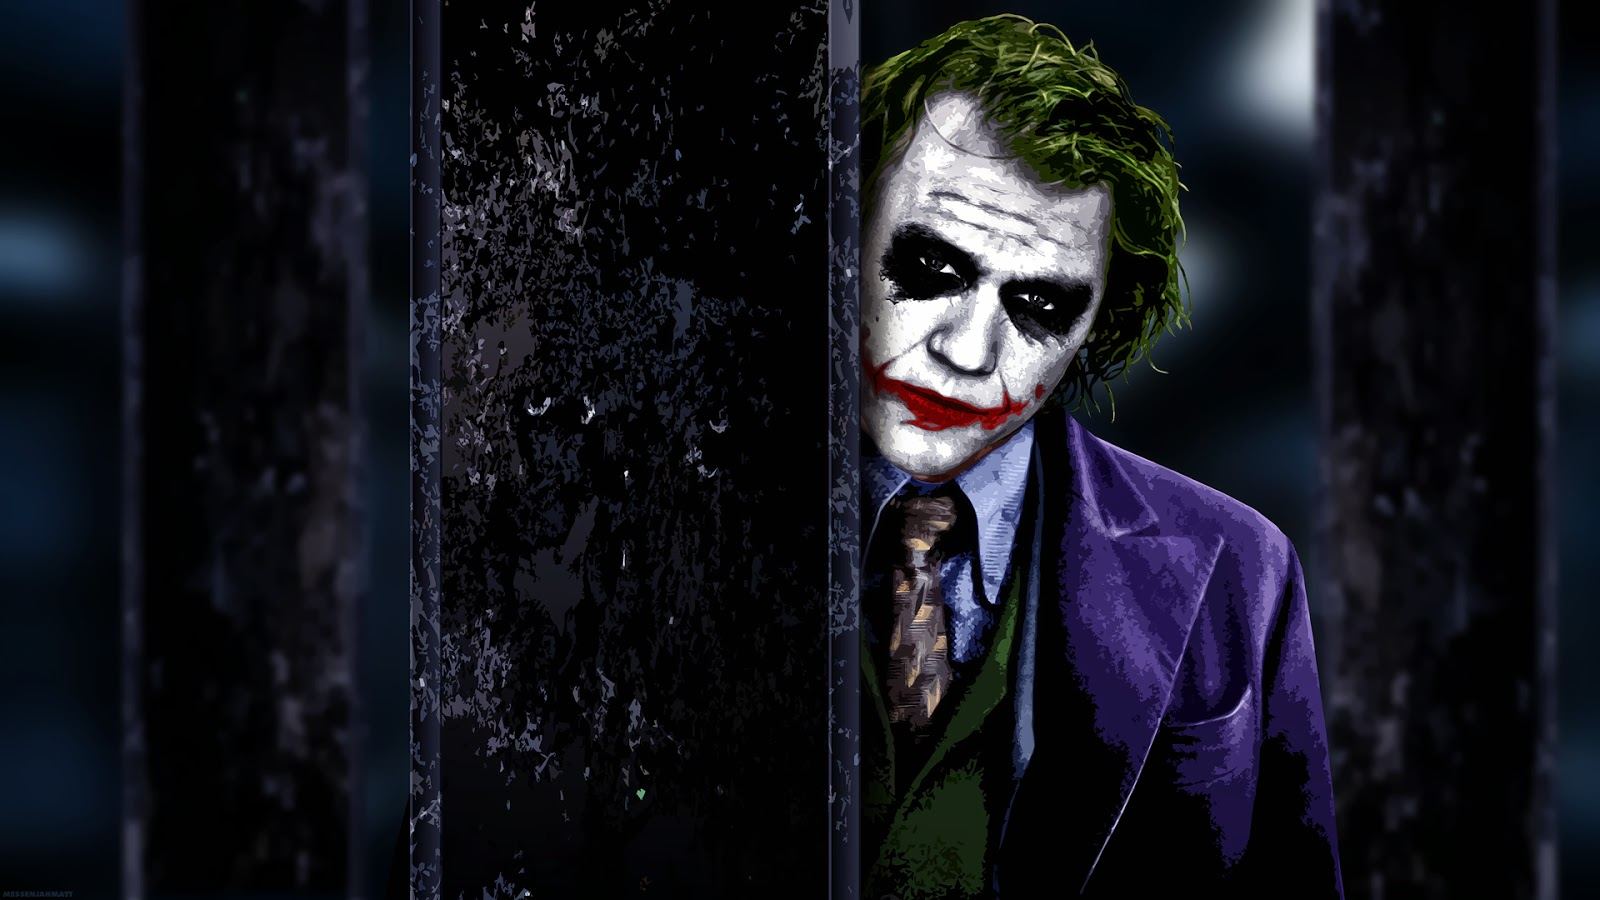 Joker HD Wallpapers joker backgrounds widescreen joker images 1600x900